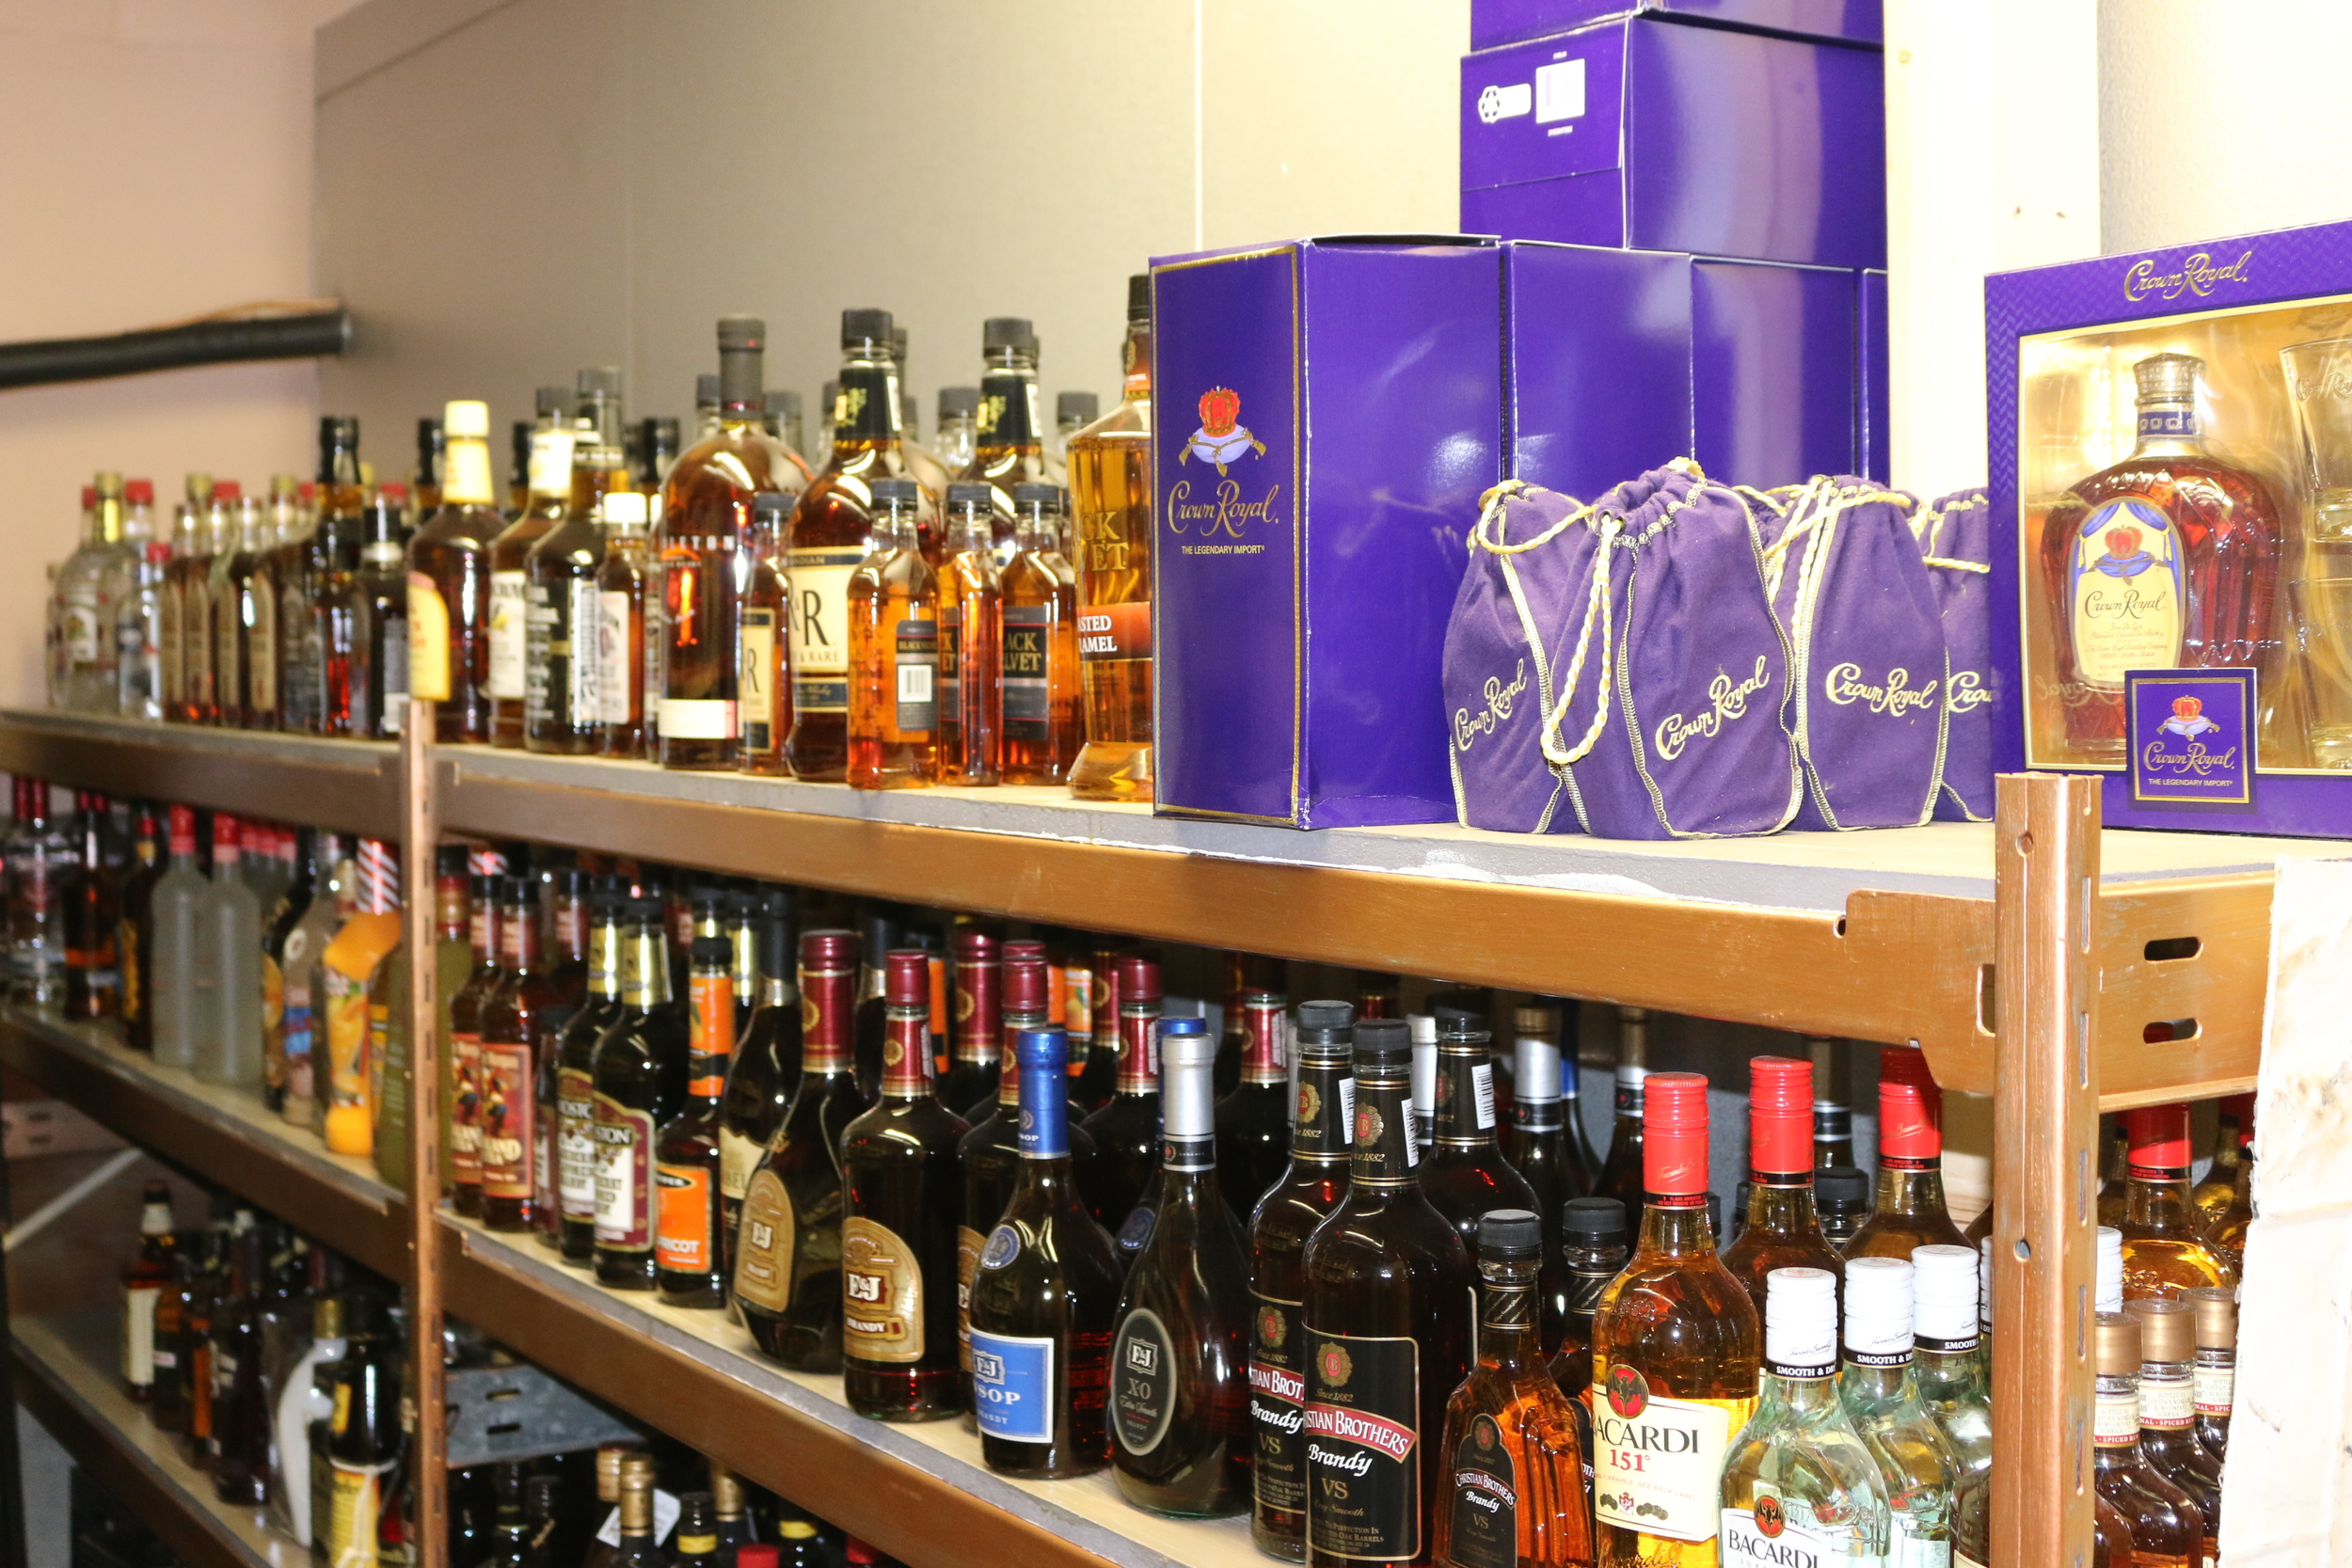 Leen 'n Bottles resides in the rear section of Winifred and is operated independently from Winifred Grocery by Eileen Stulc.Contact Eileen for all of your liquor and wine needs, as she has a large inventory on hand and can additionally order virtually anything for you.